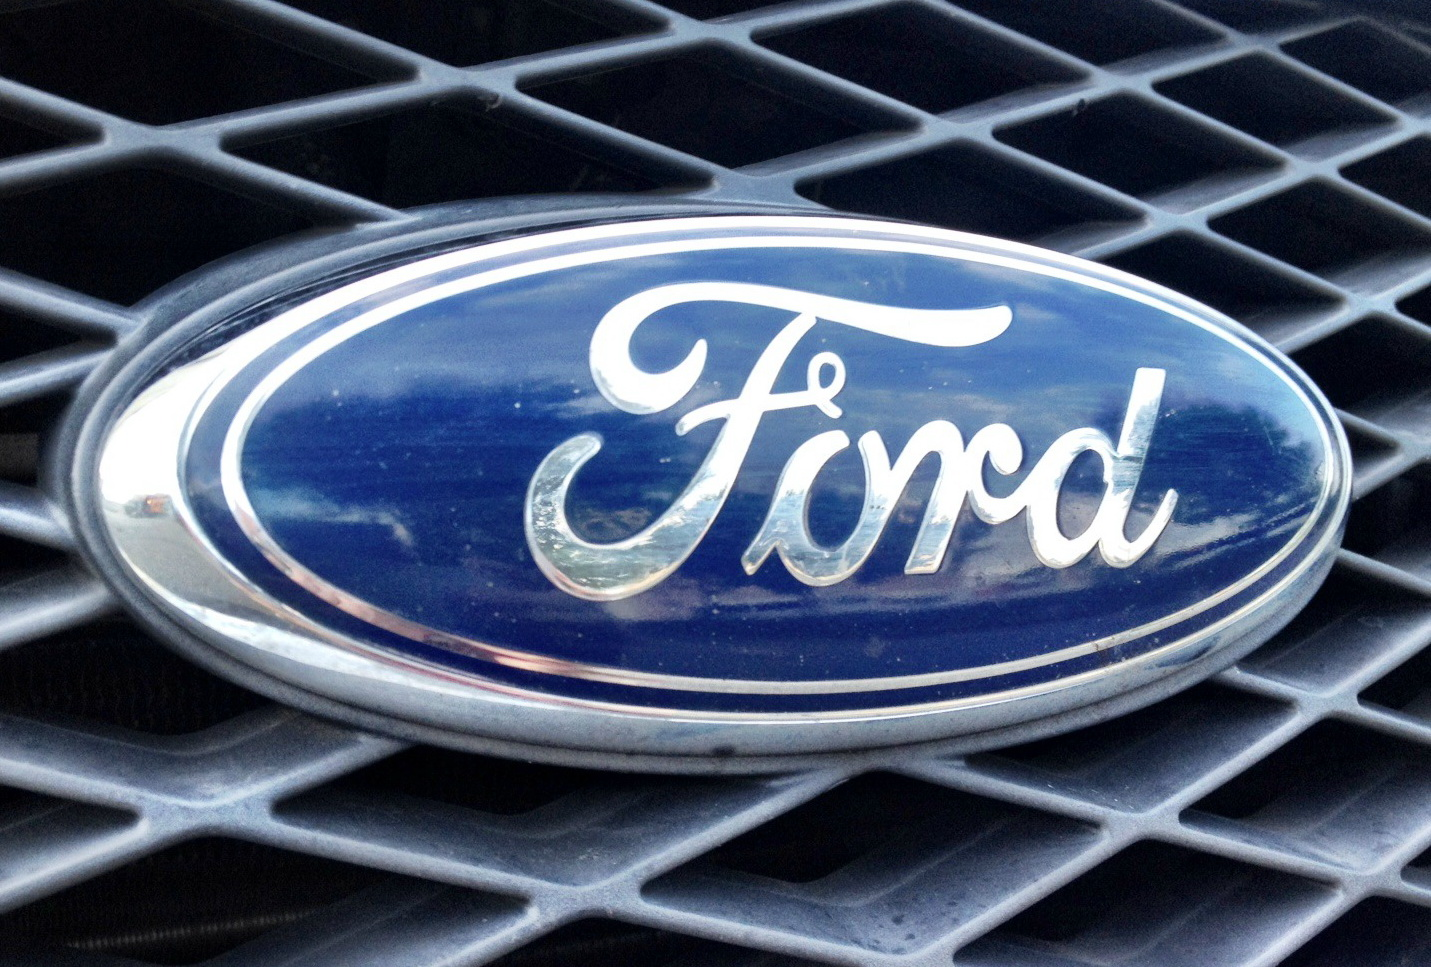 Ford >> Ford Logo, Ford Car Symbol Meaning and History | Car Brand Names.com